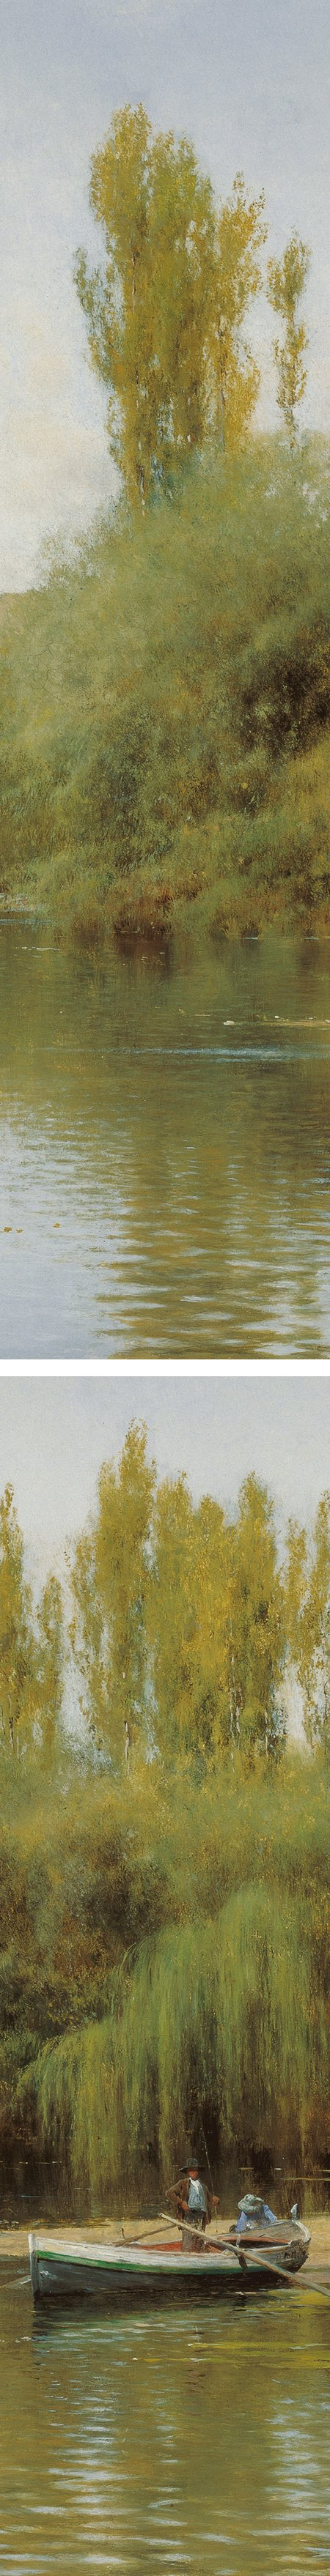 On the Banks of the Guadaíra with a boat, Emilio Sanchez-Perrier, (details)